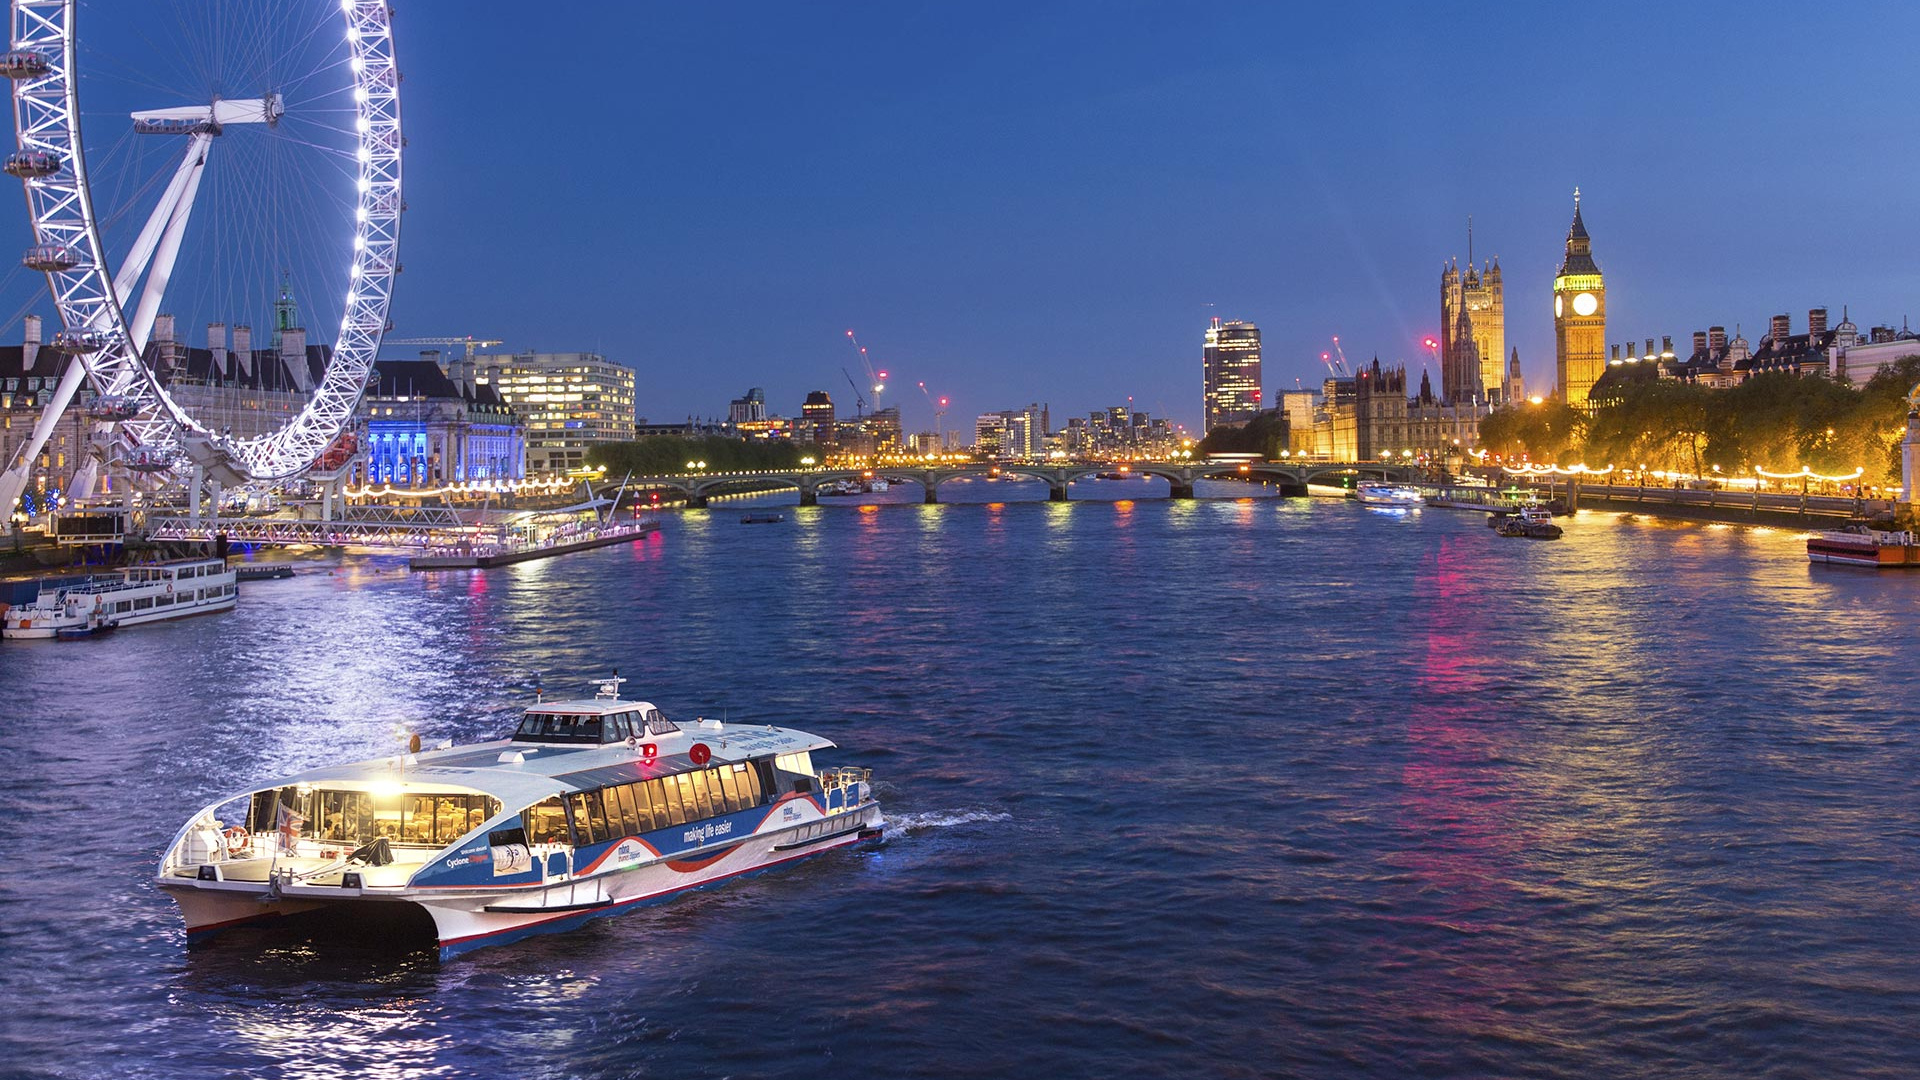 MBNA Thames Clippers boat on the Thames in the evening